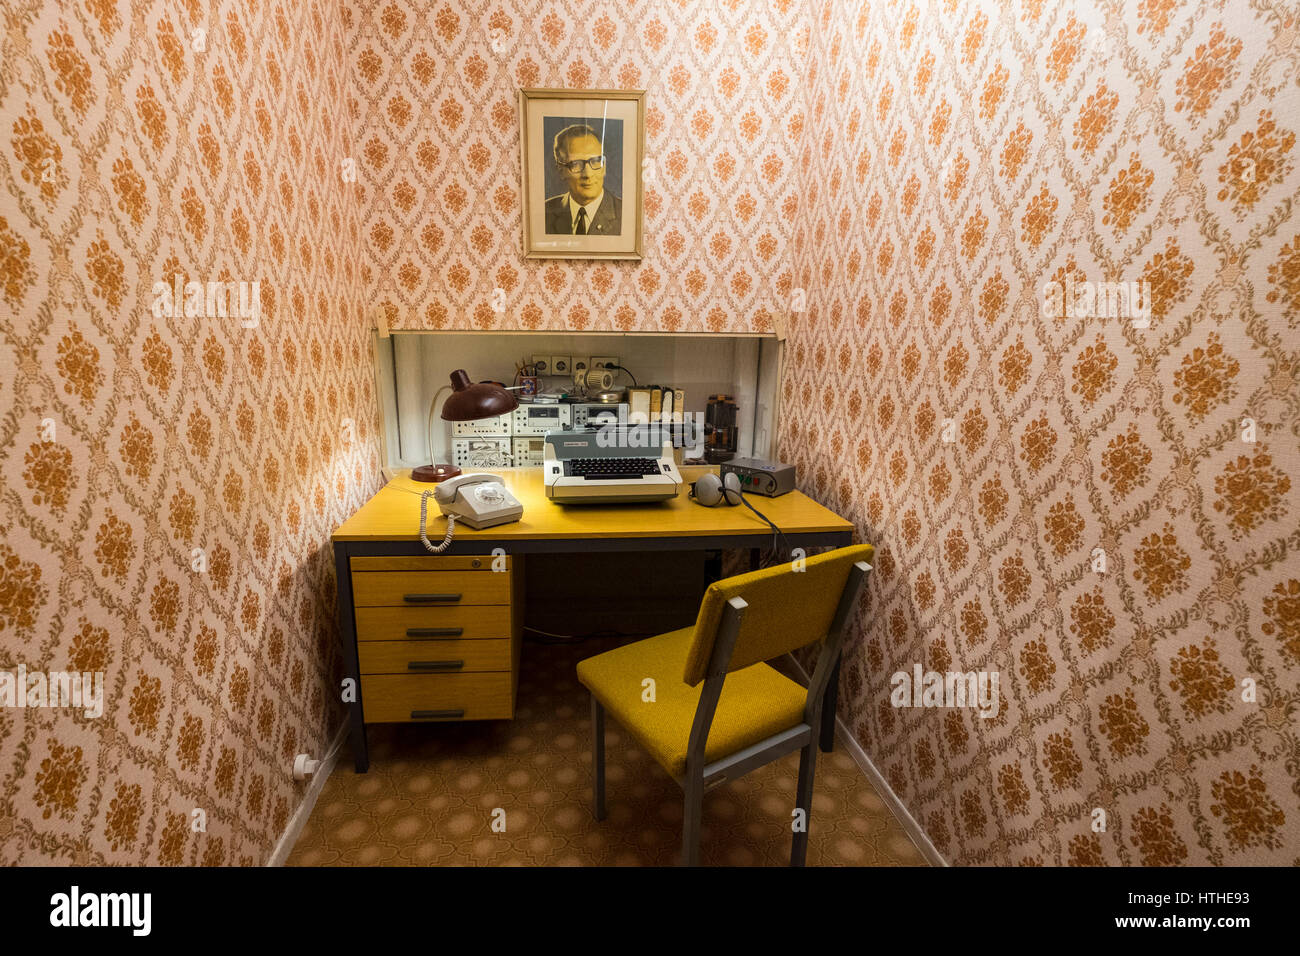 STASI listening station on display  at DDR Museum, showing life in former East Germany,  in Mitte Berlin, Germany - Stock Image